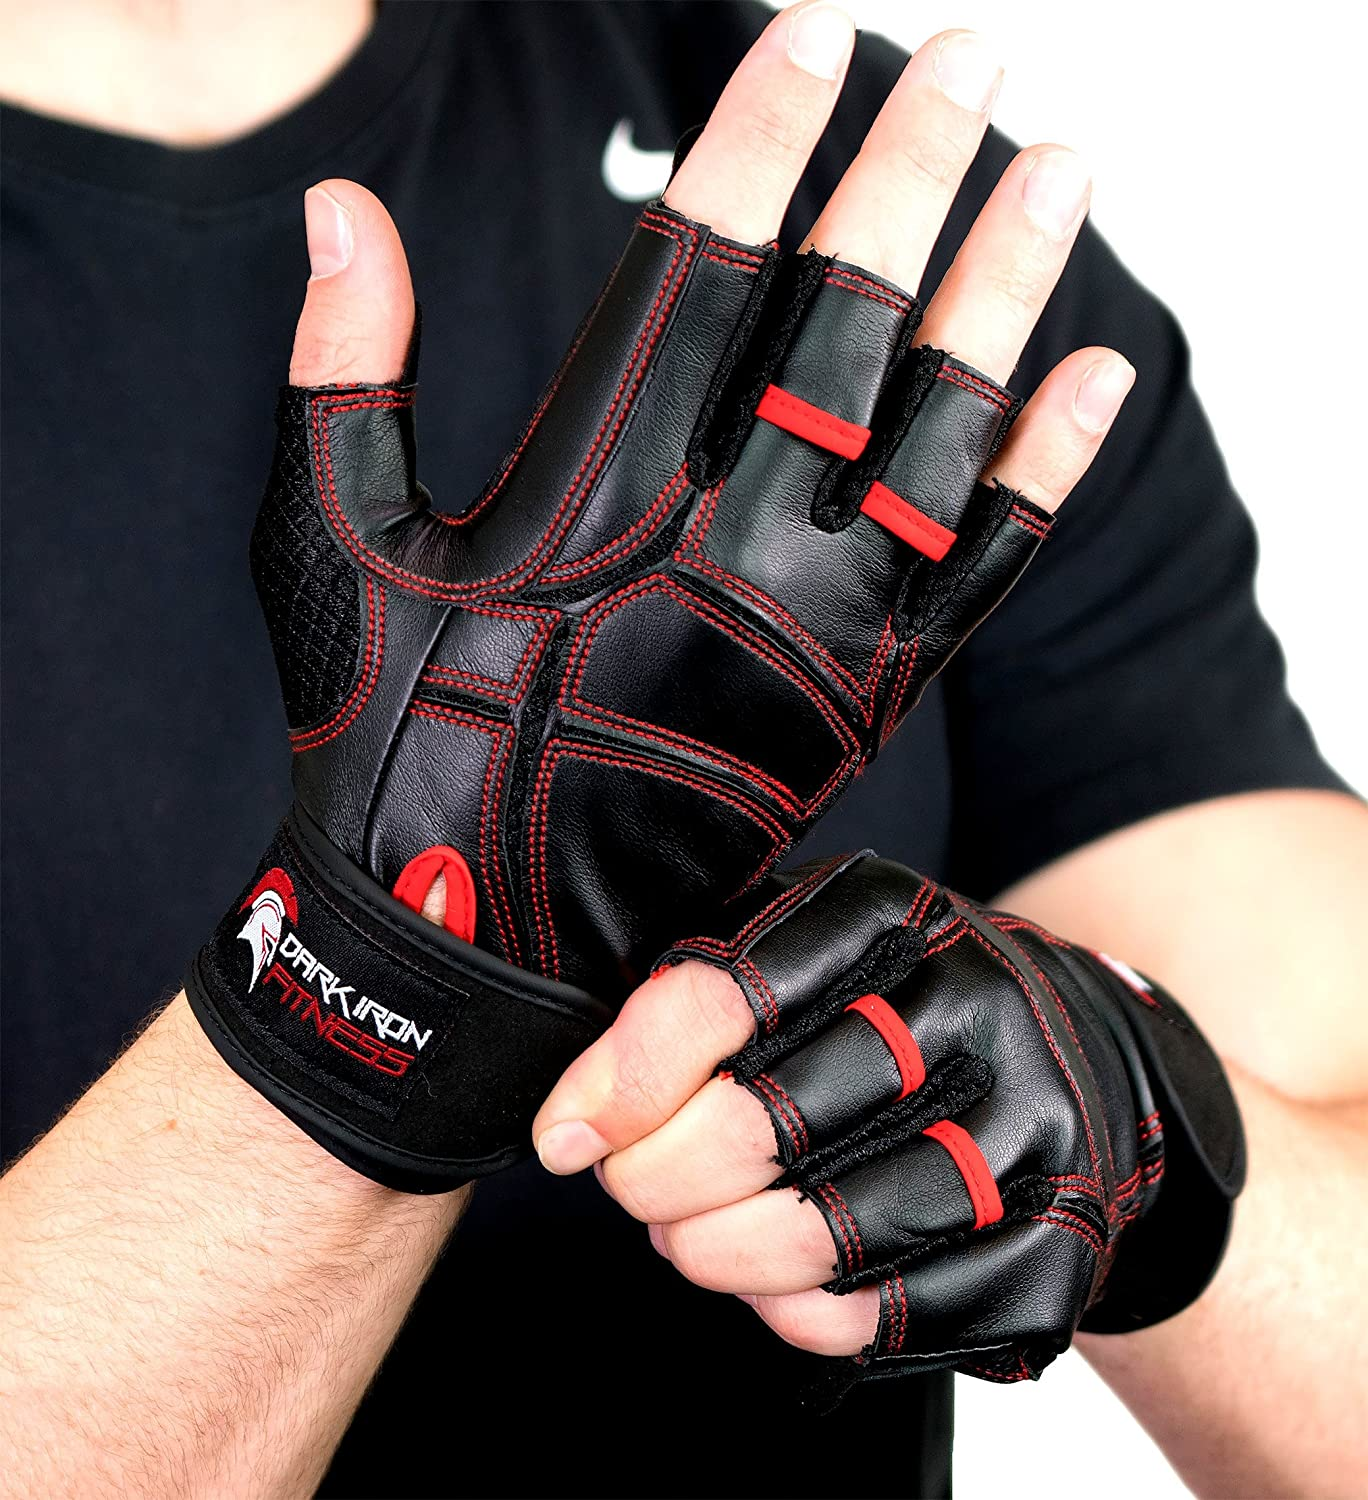 Bench Pressing with Gloves - Dark Iron Fitness' leather work out gloves